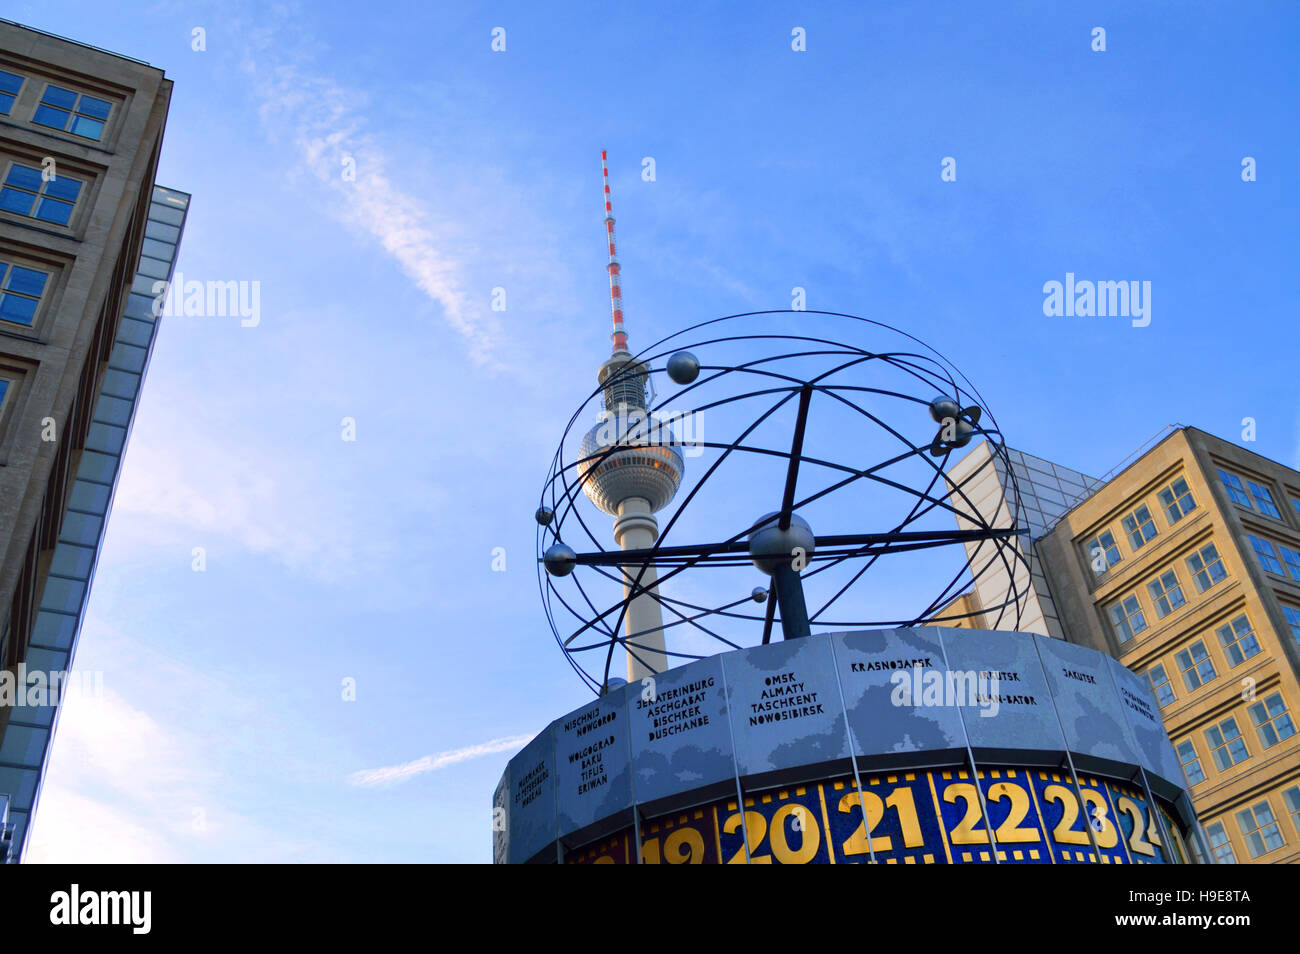 The TV Tower (Fernsehturm) with the world time clock (Weltzeituhr) in the foreground at Alexanderplatz in Berlin - Stock Image